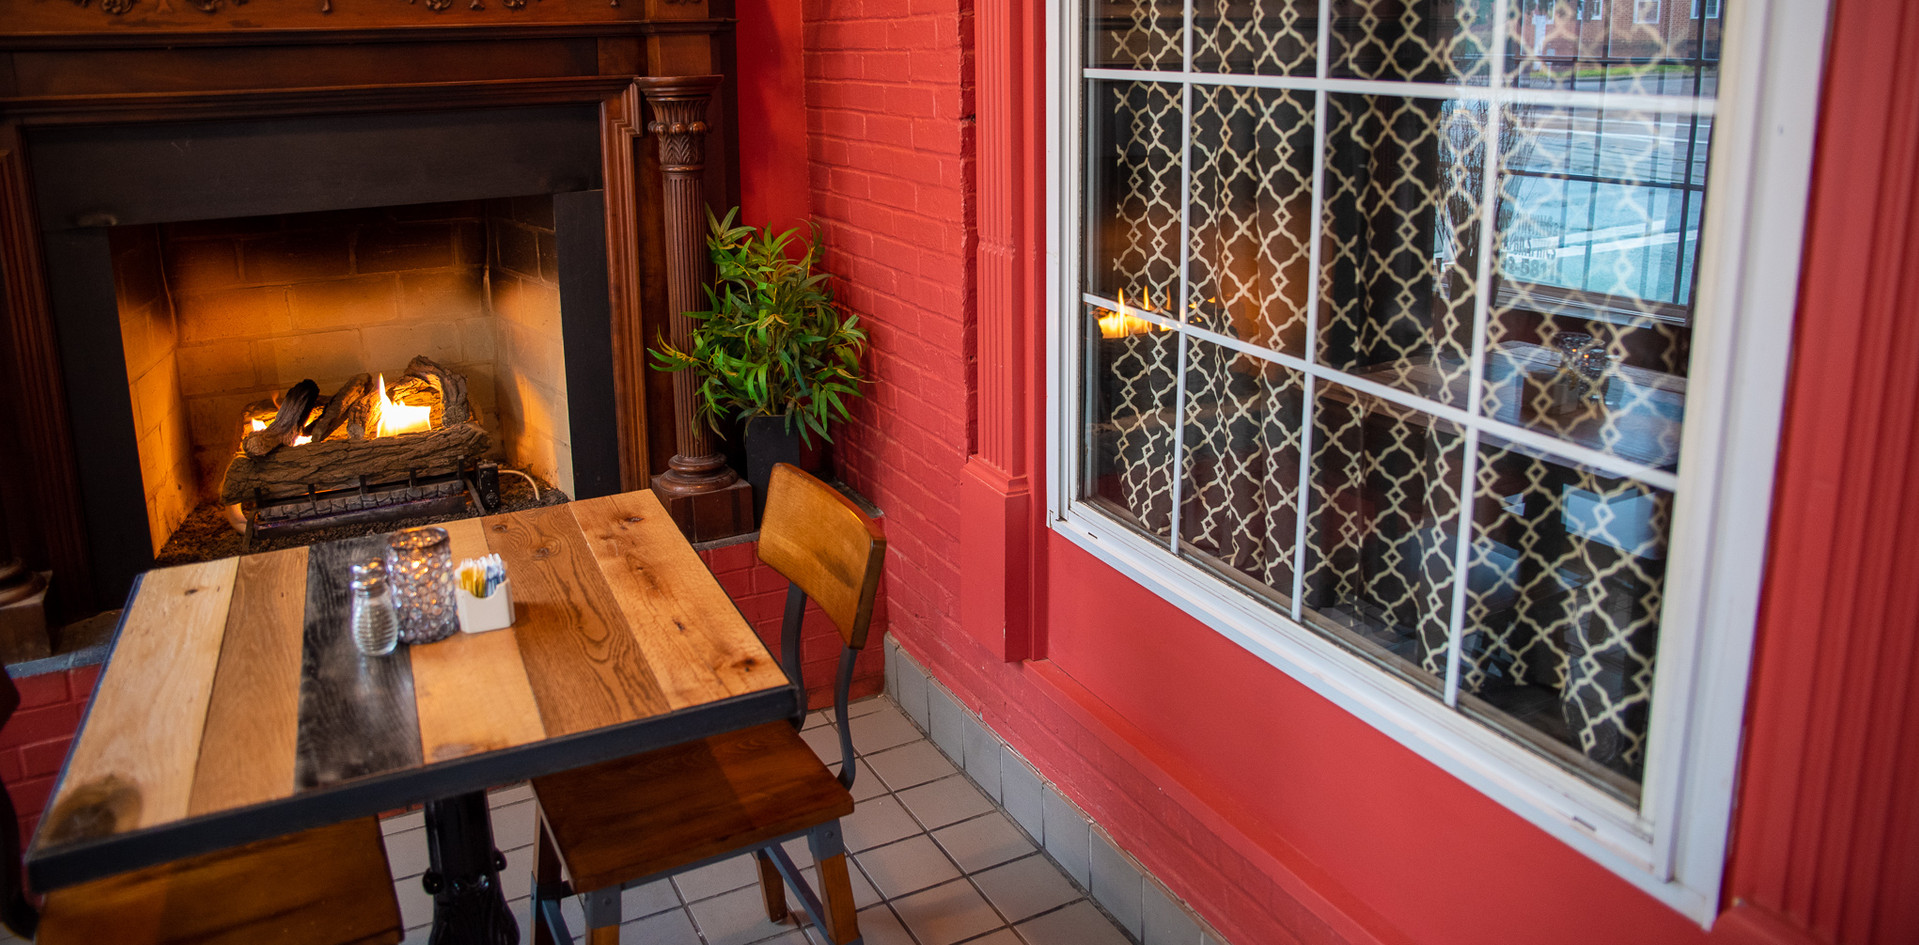 A Table by the fire in the Parlor